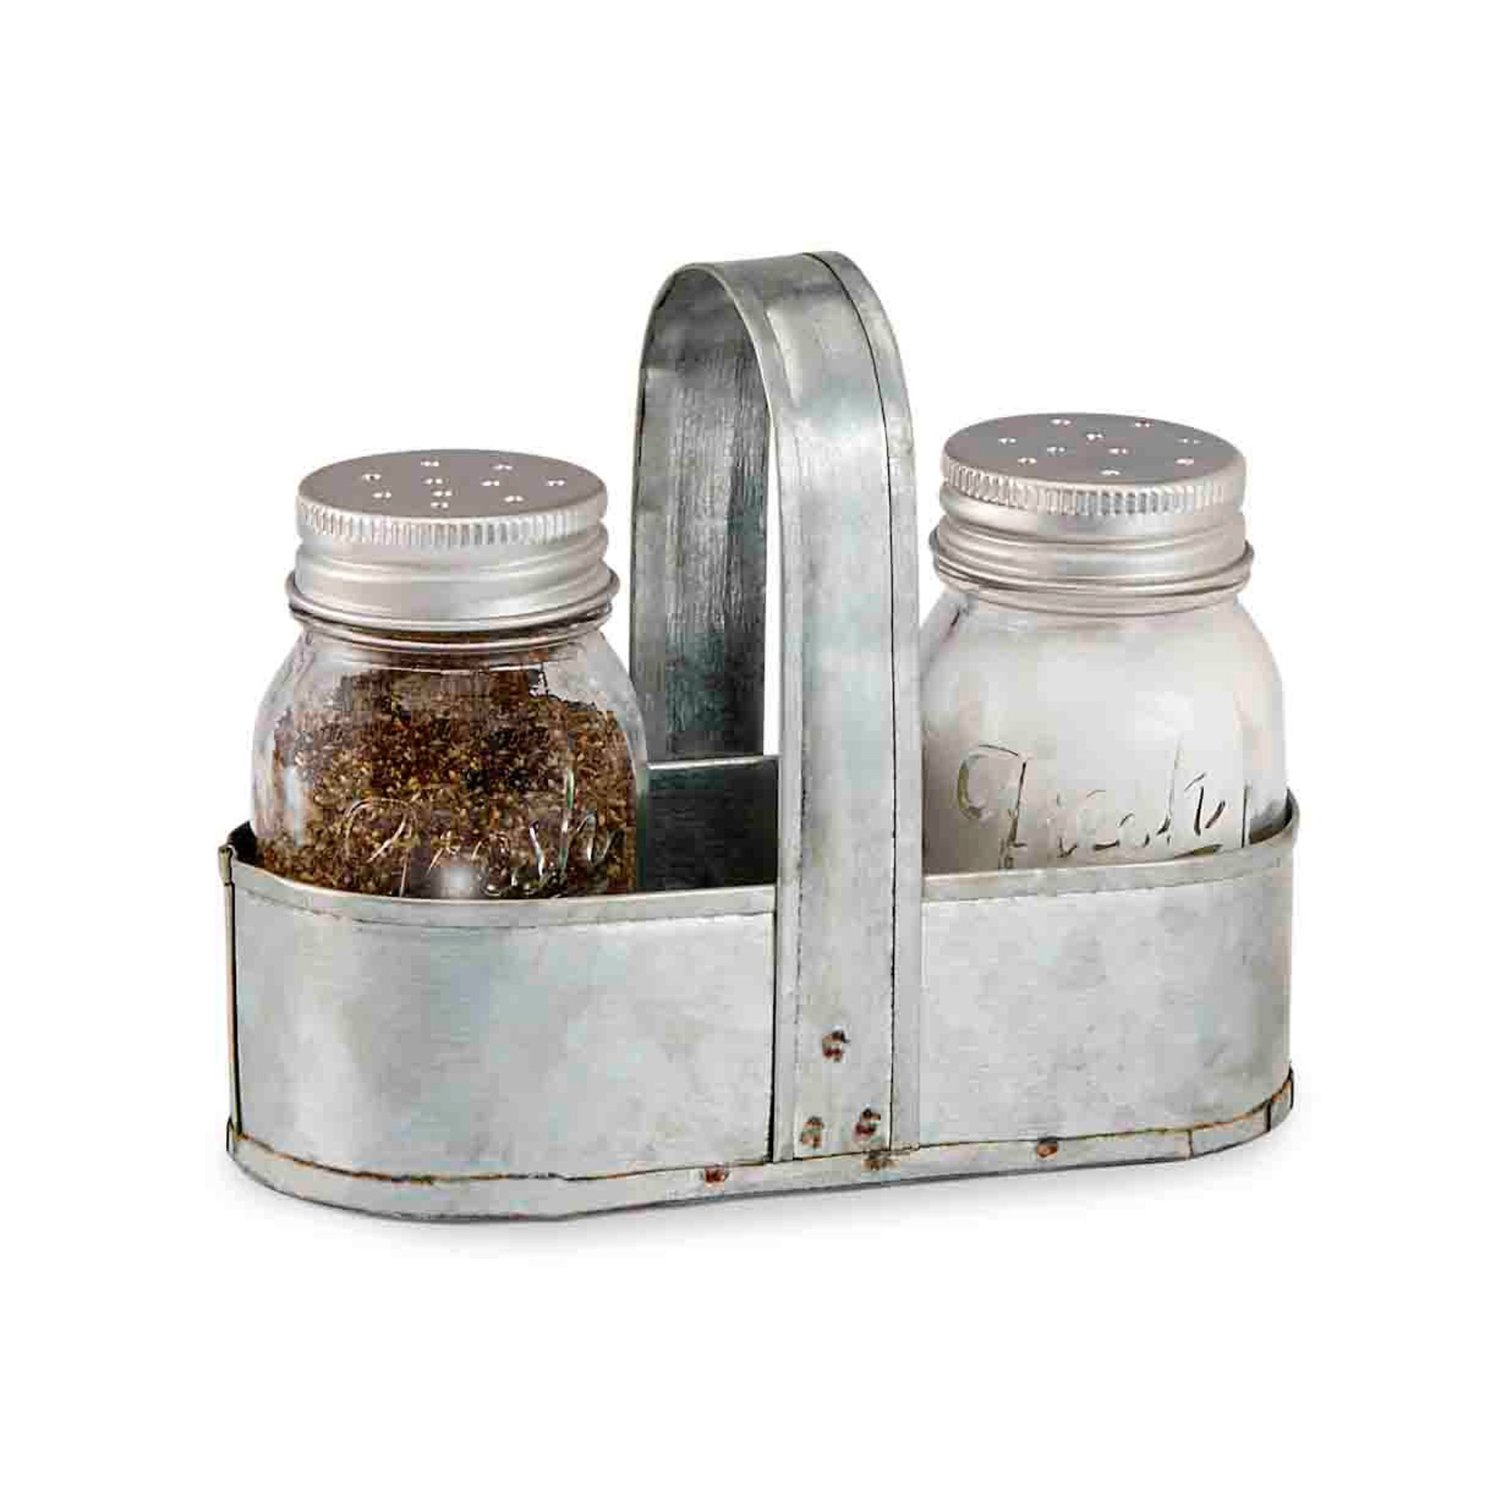 Farmhouse Home Decor | Salt and Pepper Caddy